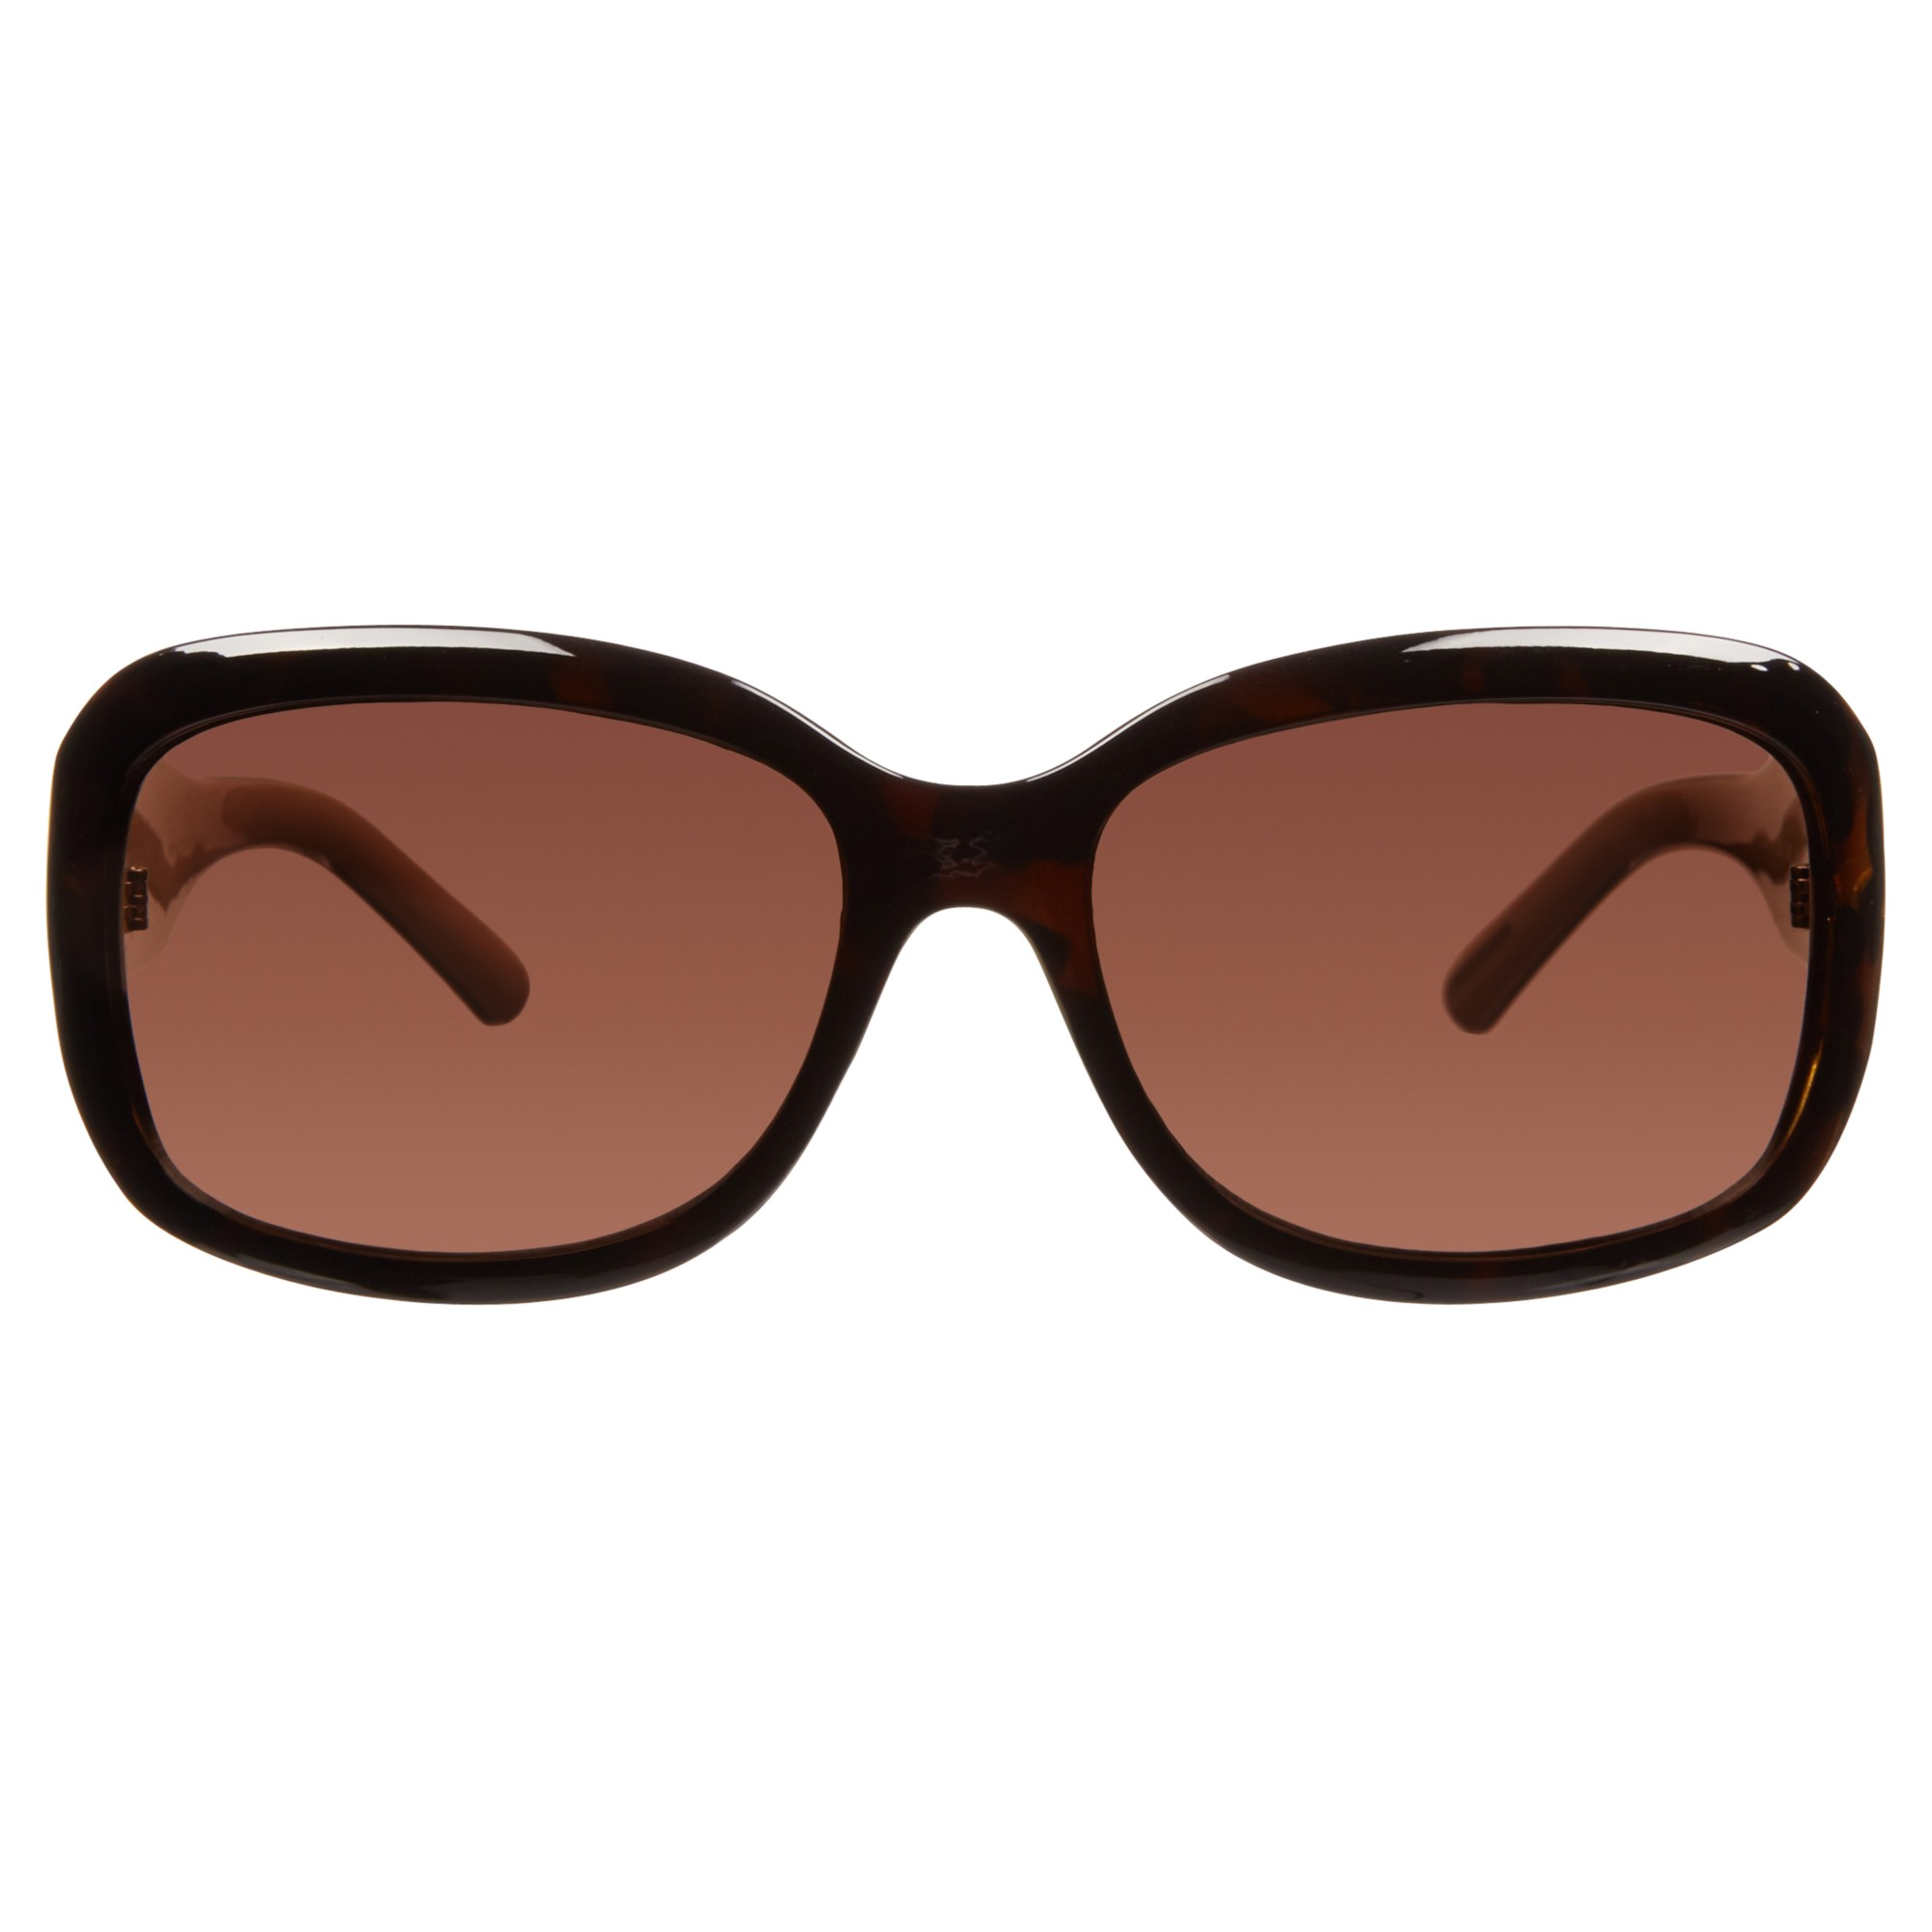 Ted Baker Tb1183 Square Sunglasses in Brown